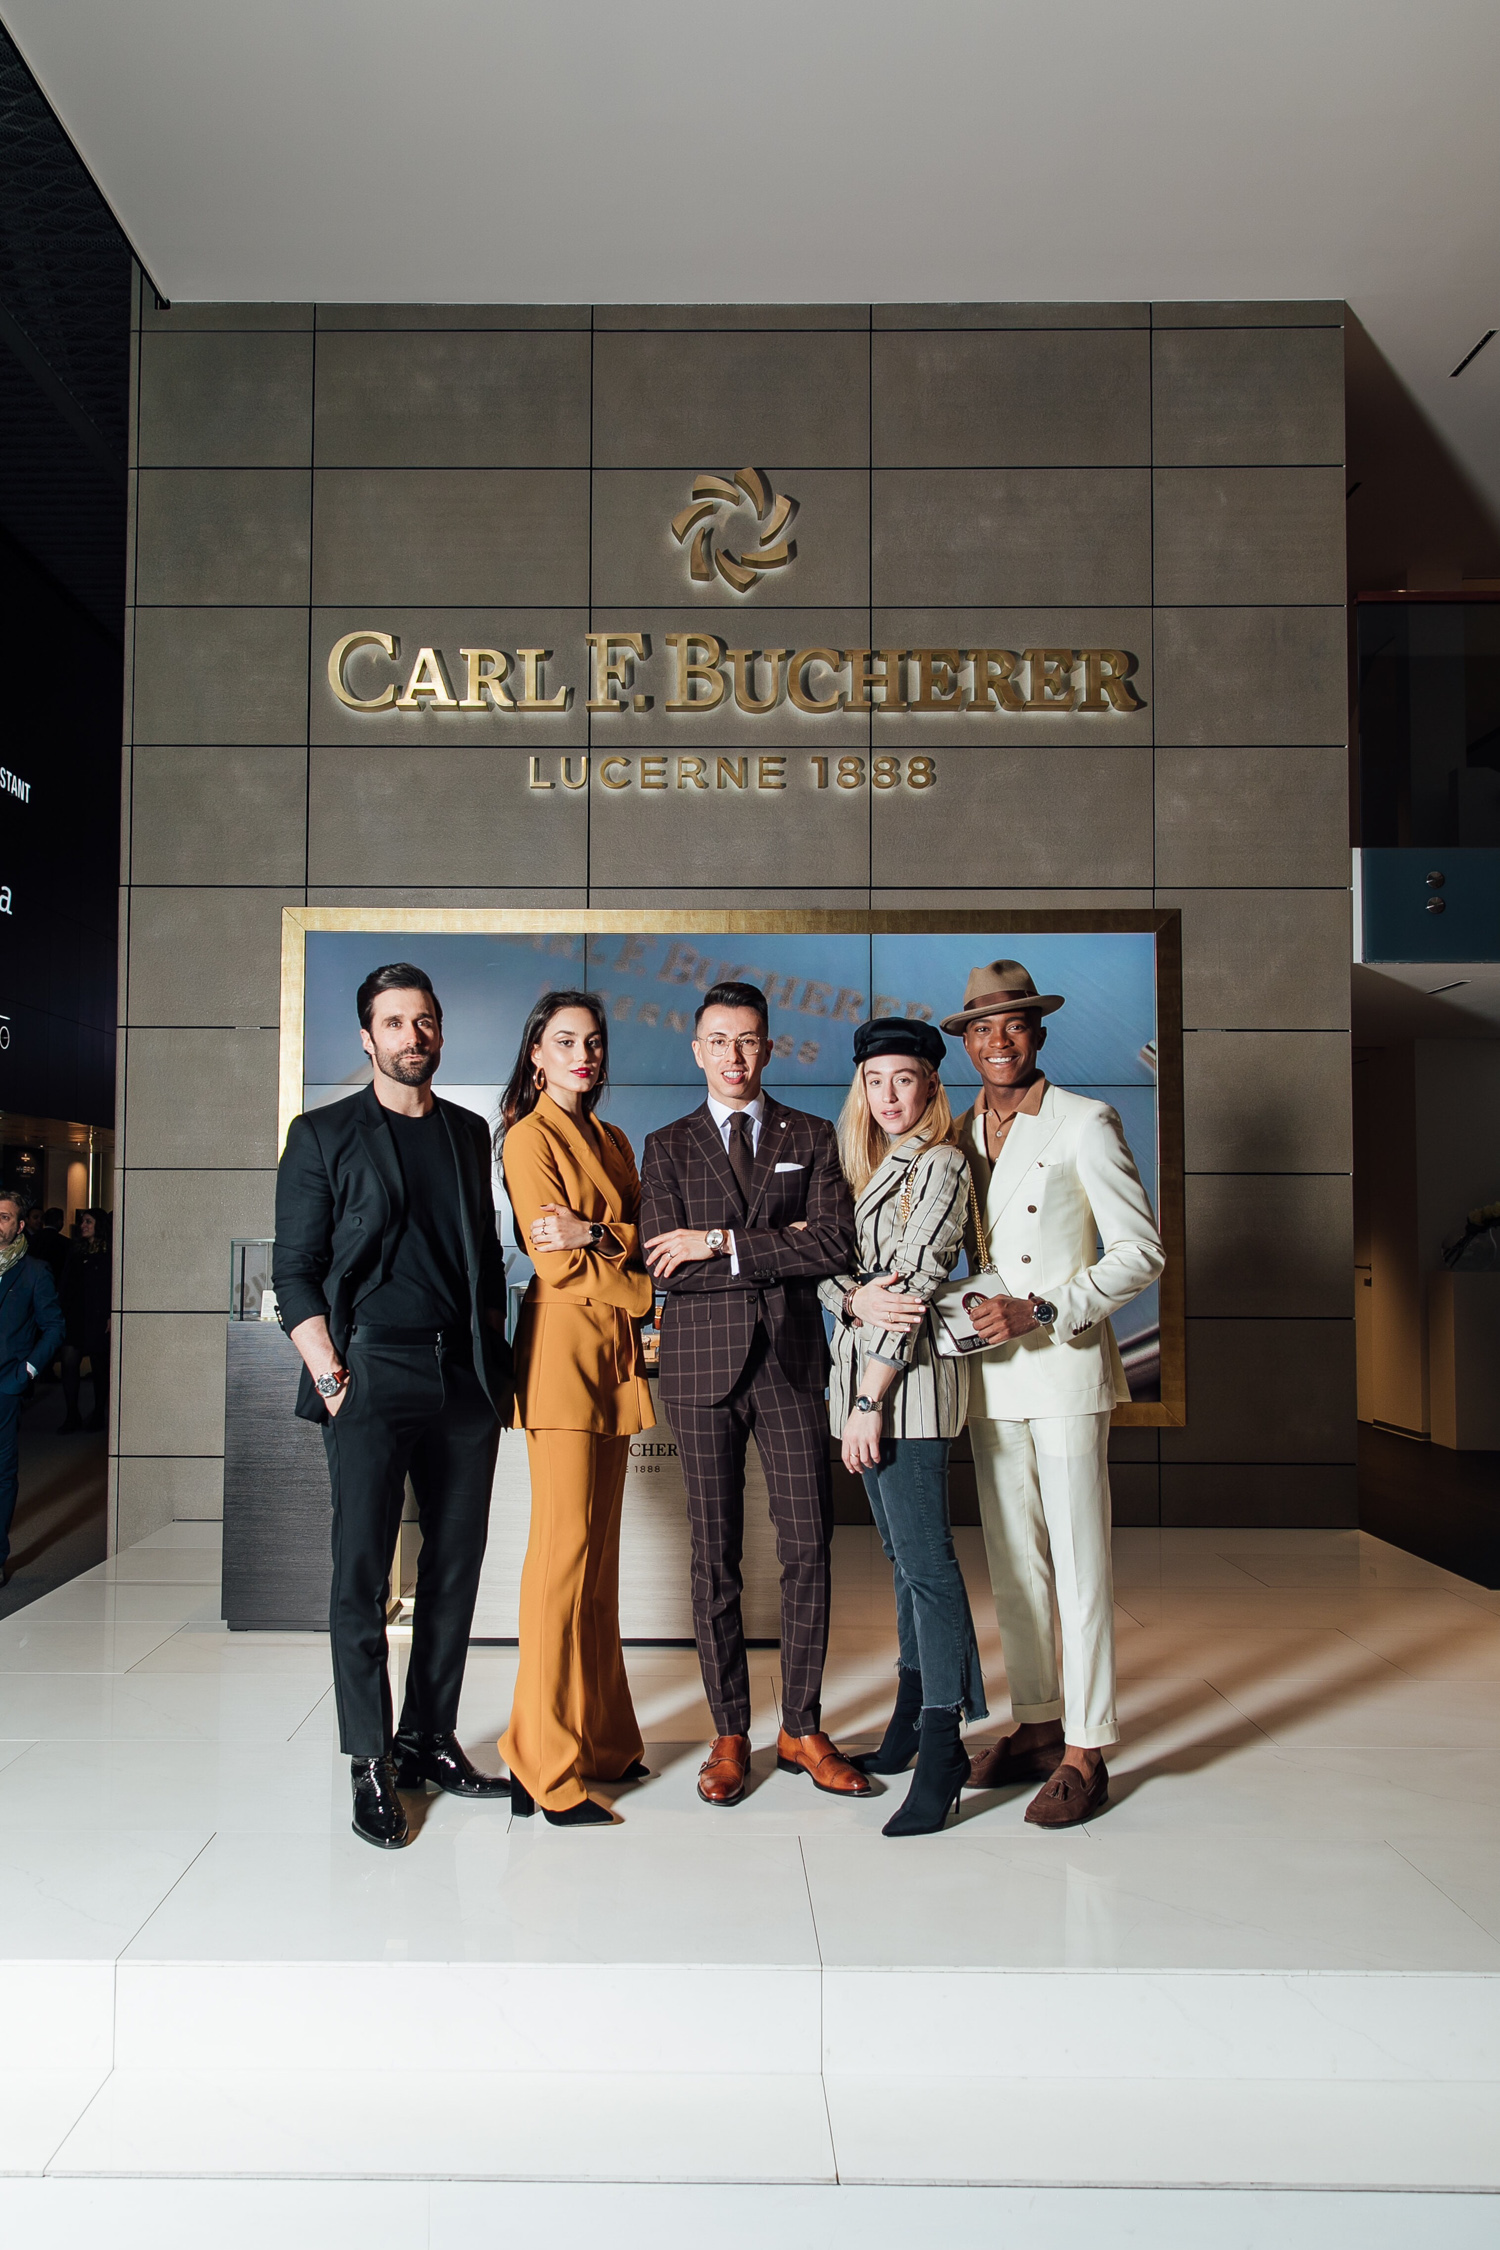 CarlFBucherer_Baselworld9